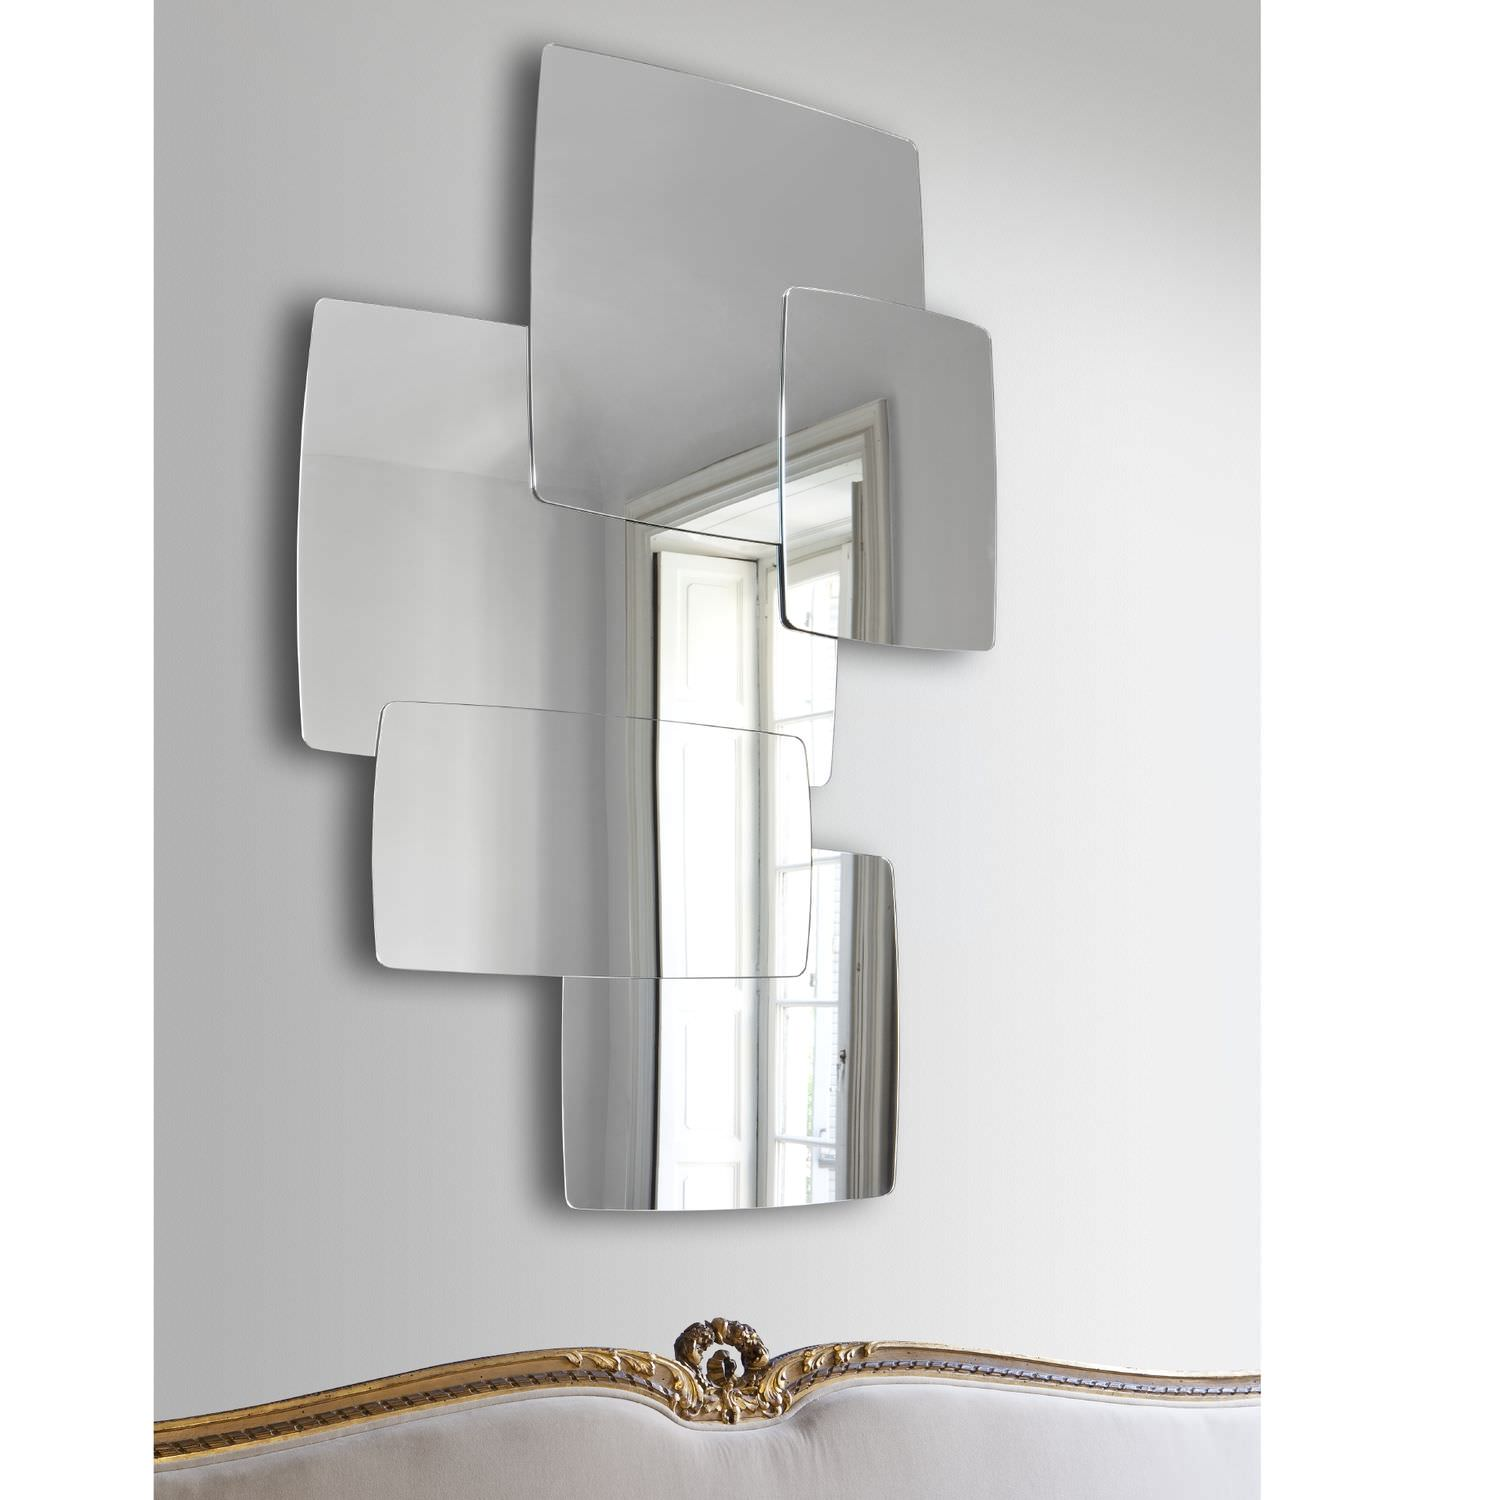 Grand miroir mural 18 id es de d coration int rieure for Miroir mural grand